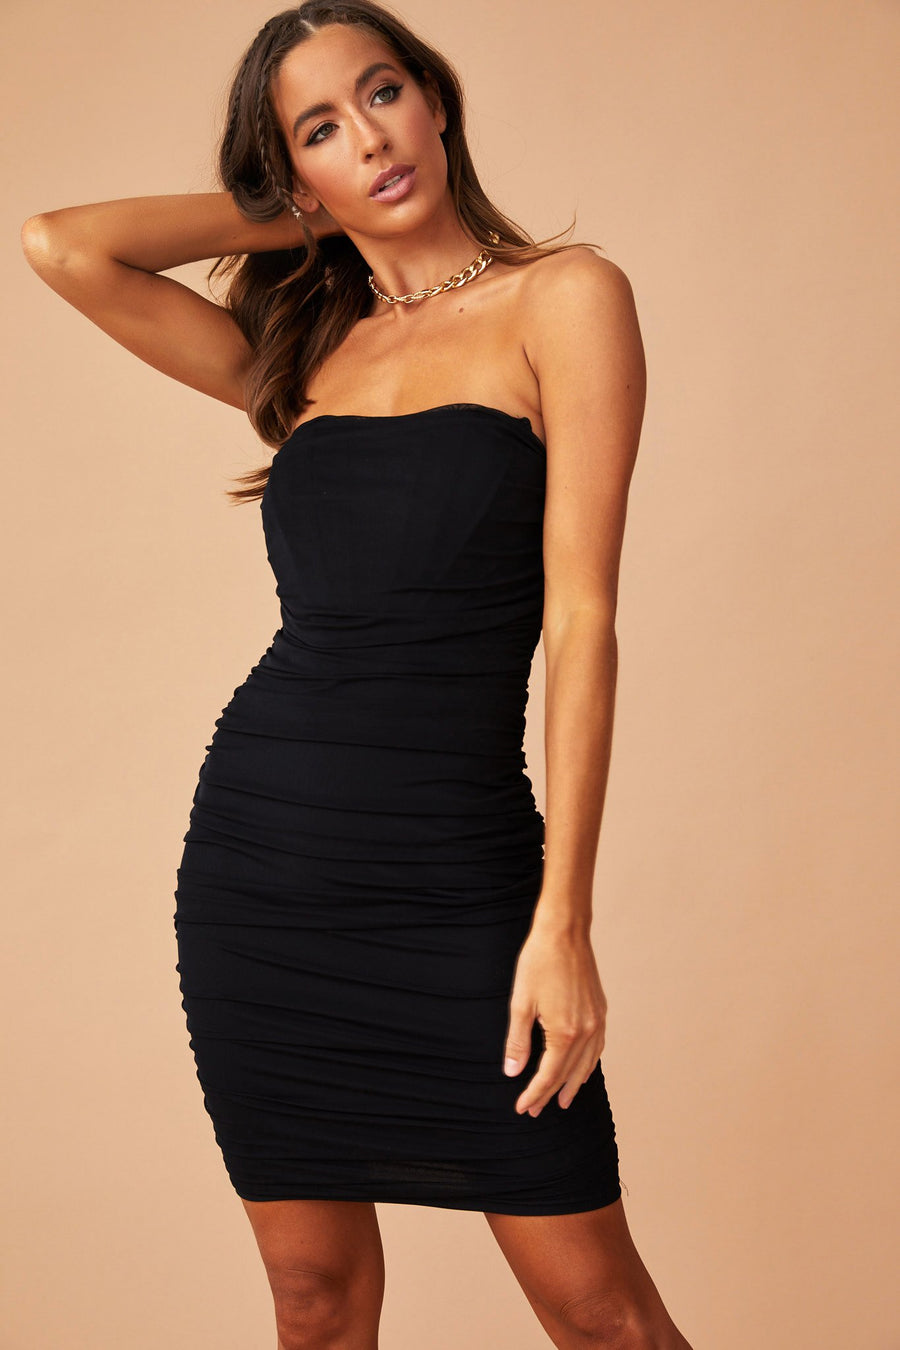 Fixated On You Dress // Black